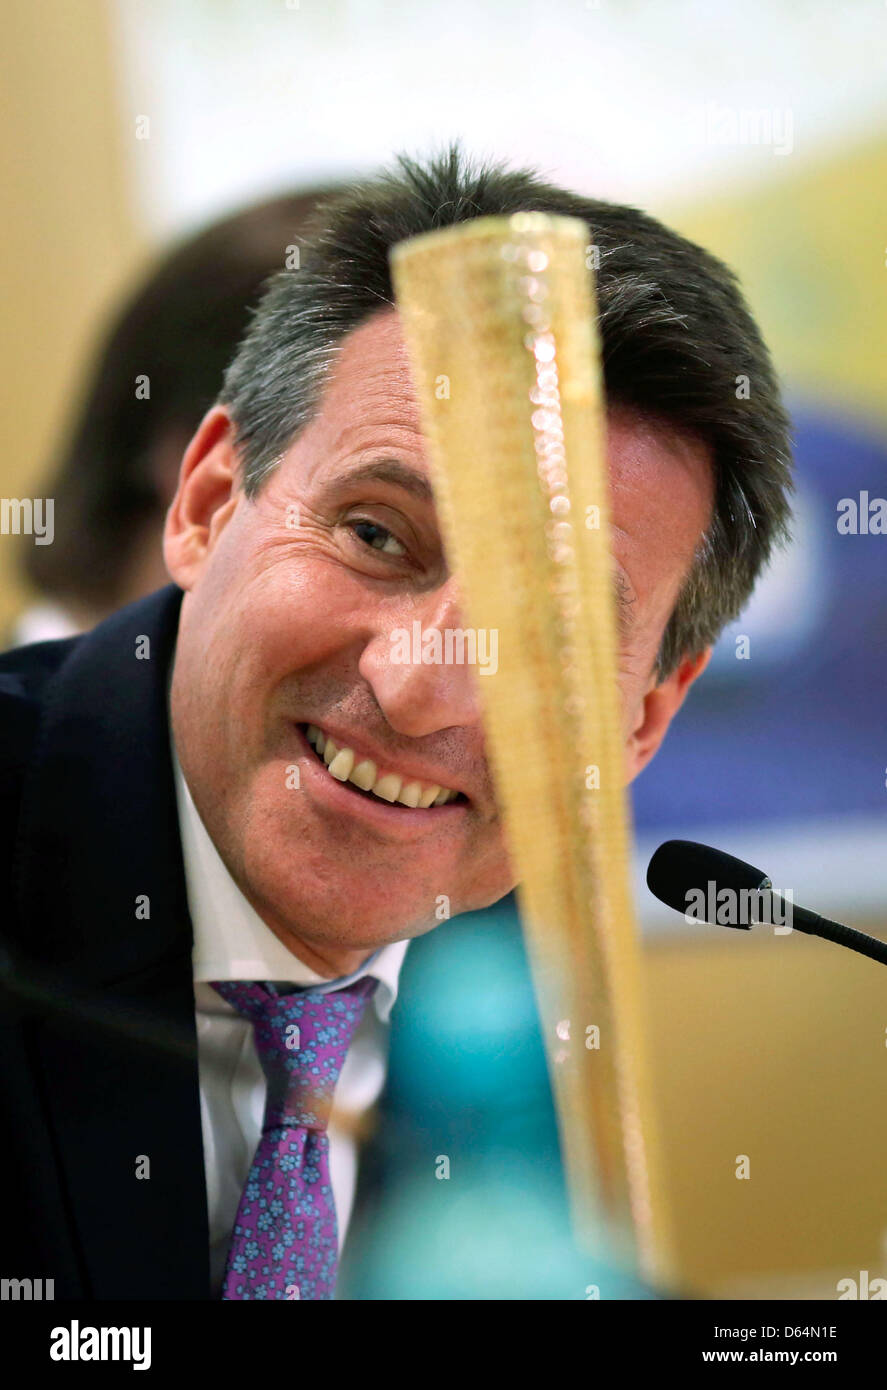 Chairman of the London Organising Committee for the Olympic Games 2012 in London Lord Sebastian Coe sits next to - Stock Image